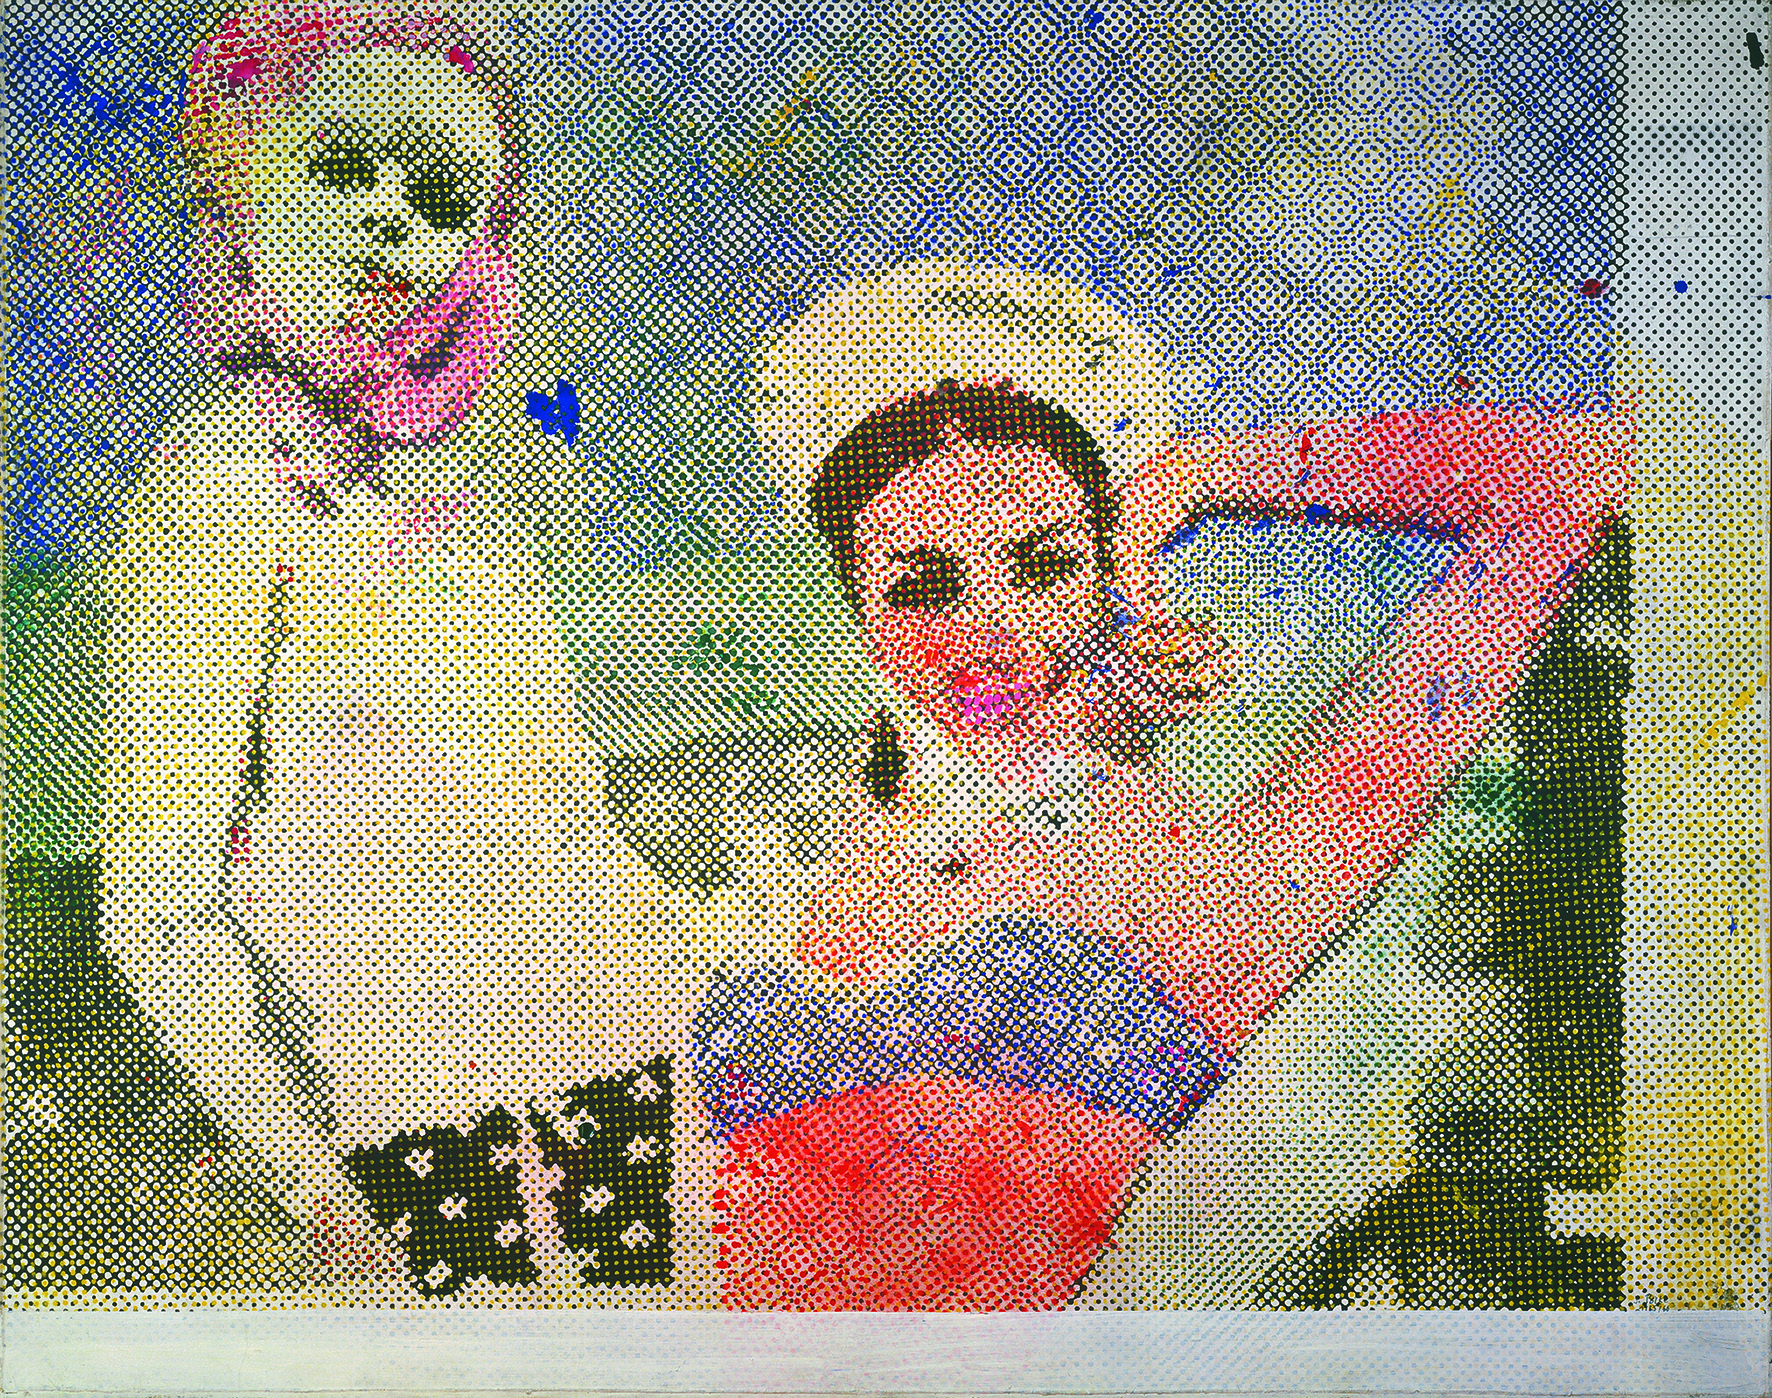 Sigmar Polke, Girlfriends, 1965-6 The estate of Sigmar Polke / DACS, London / VG Bild-Kunst, Bonn